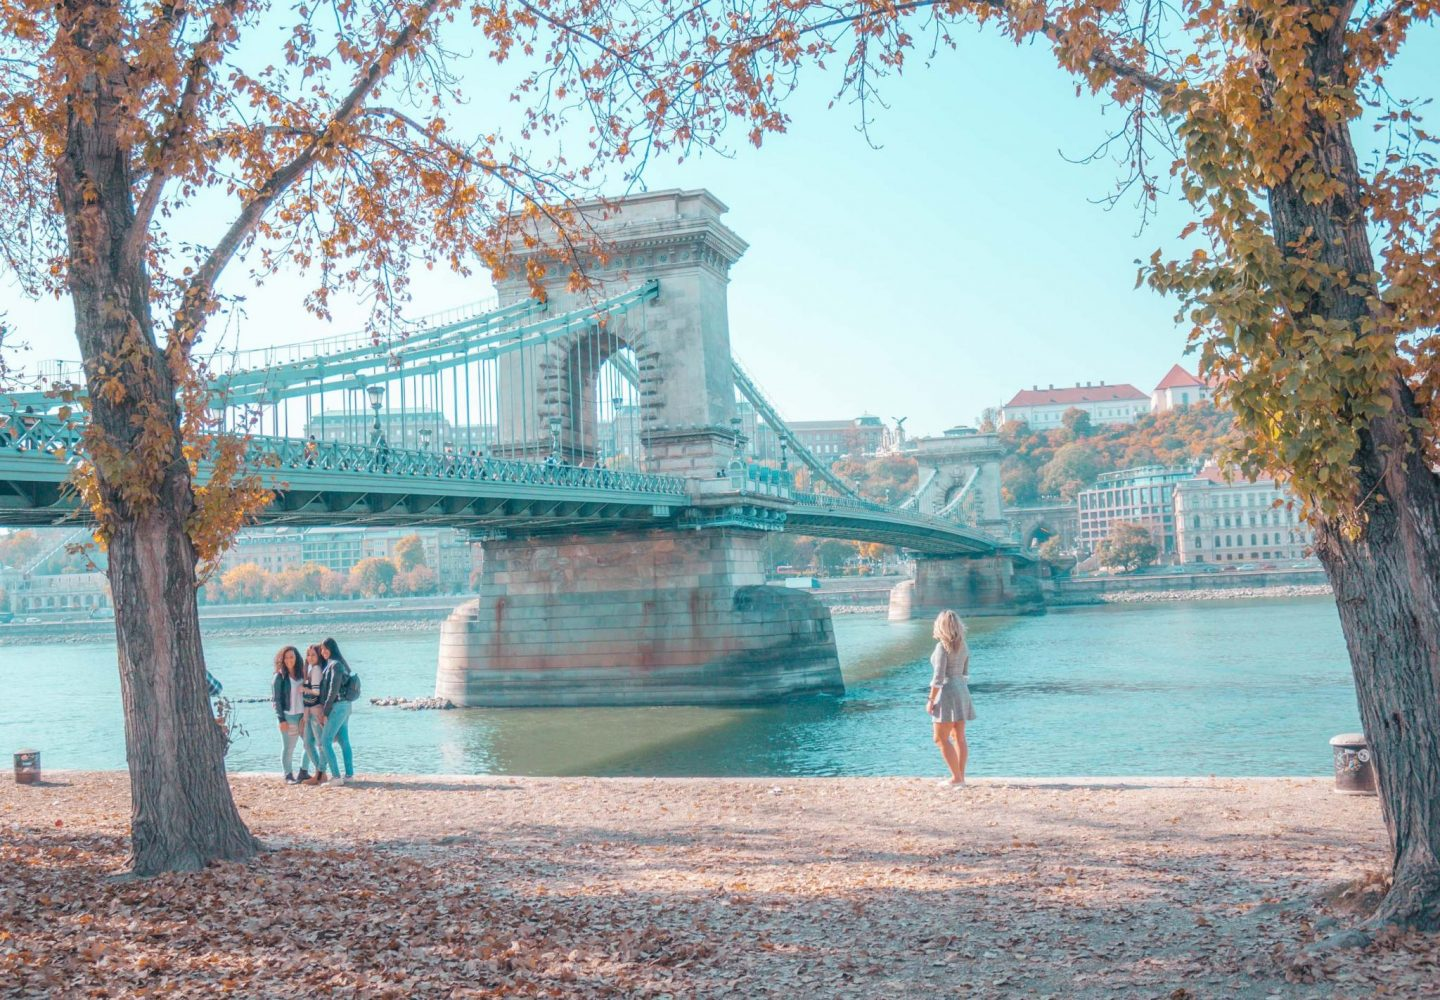 5 days in Budapest - Chain Bridge